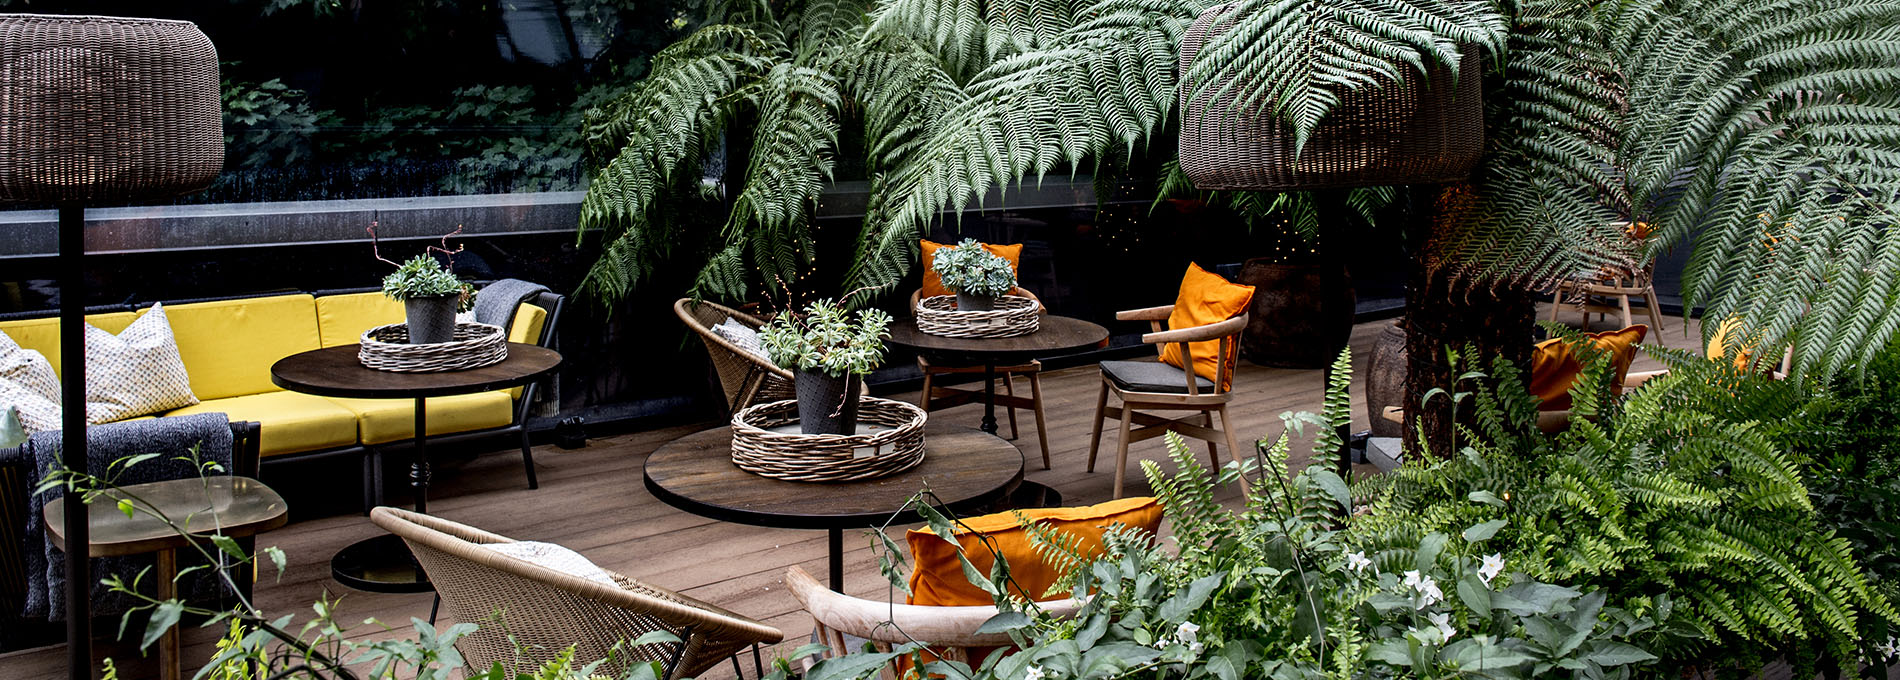 Outdoor terrace with seating and greenery